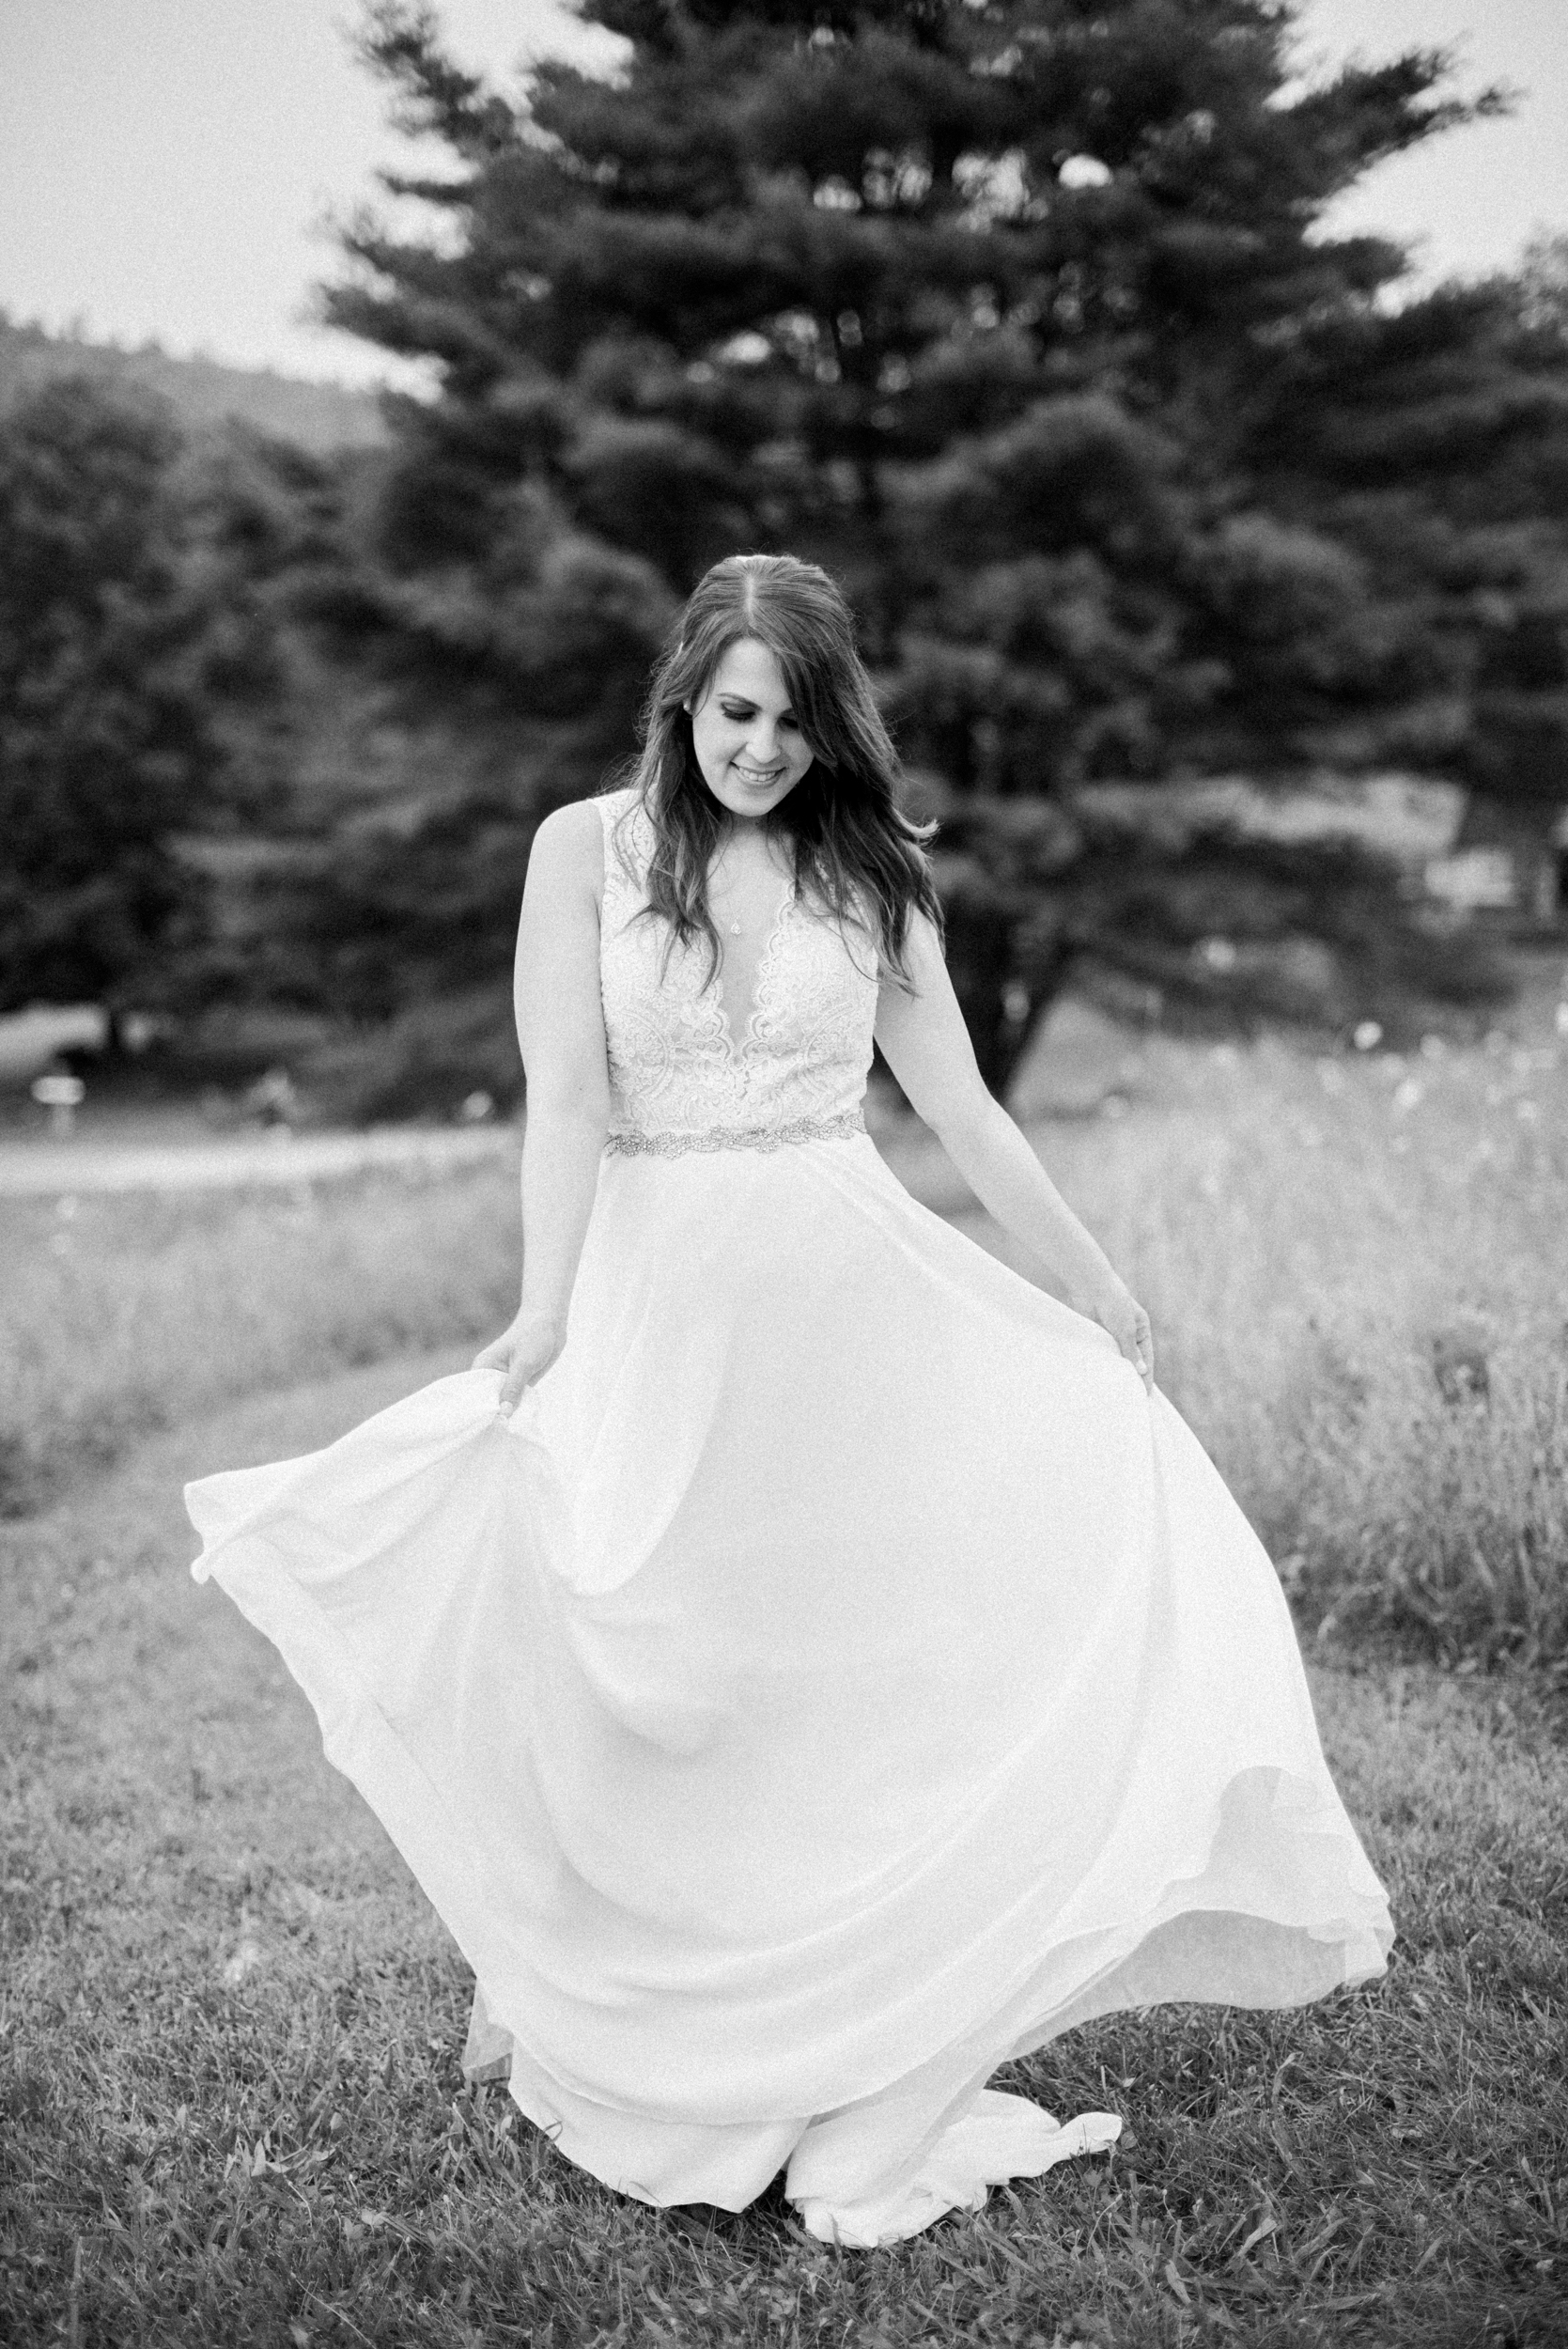 Bridal Portraits in New England